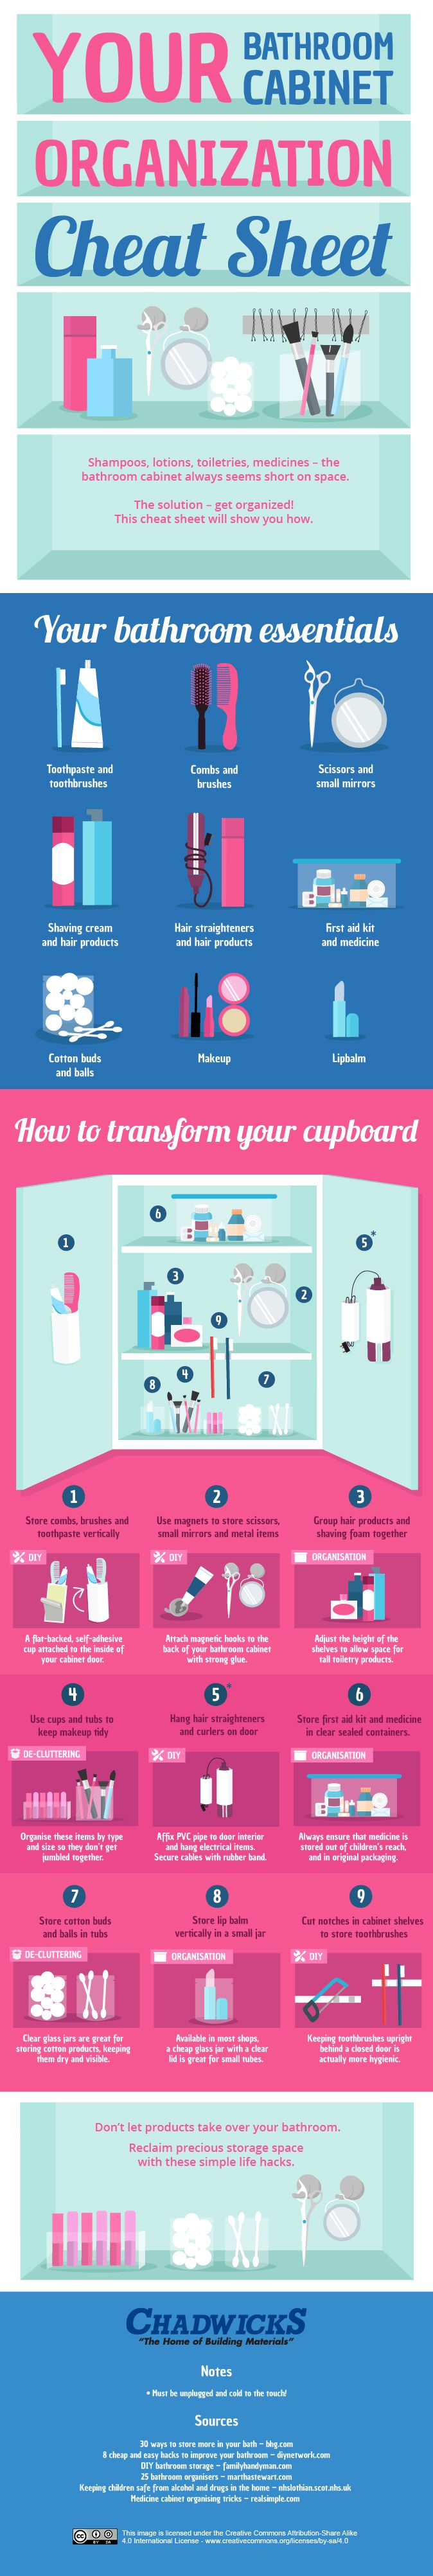 Ultimate Bathroom Cabinet Organisation Cheat Sheet Infographic